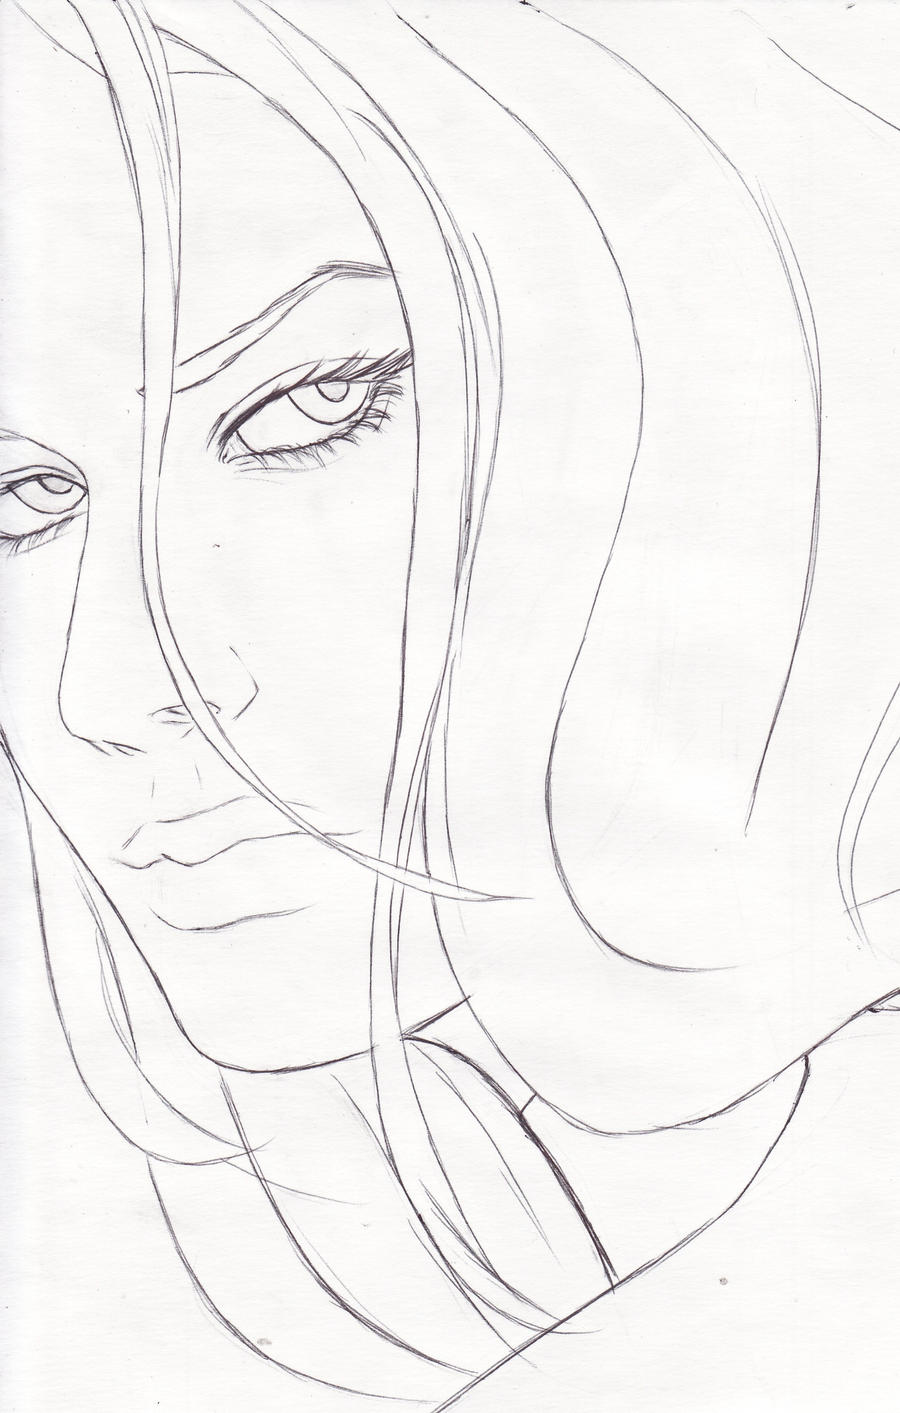 Line Drawing Of Face : Ayana s face line art by cleanslash on deviantart